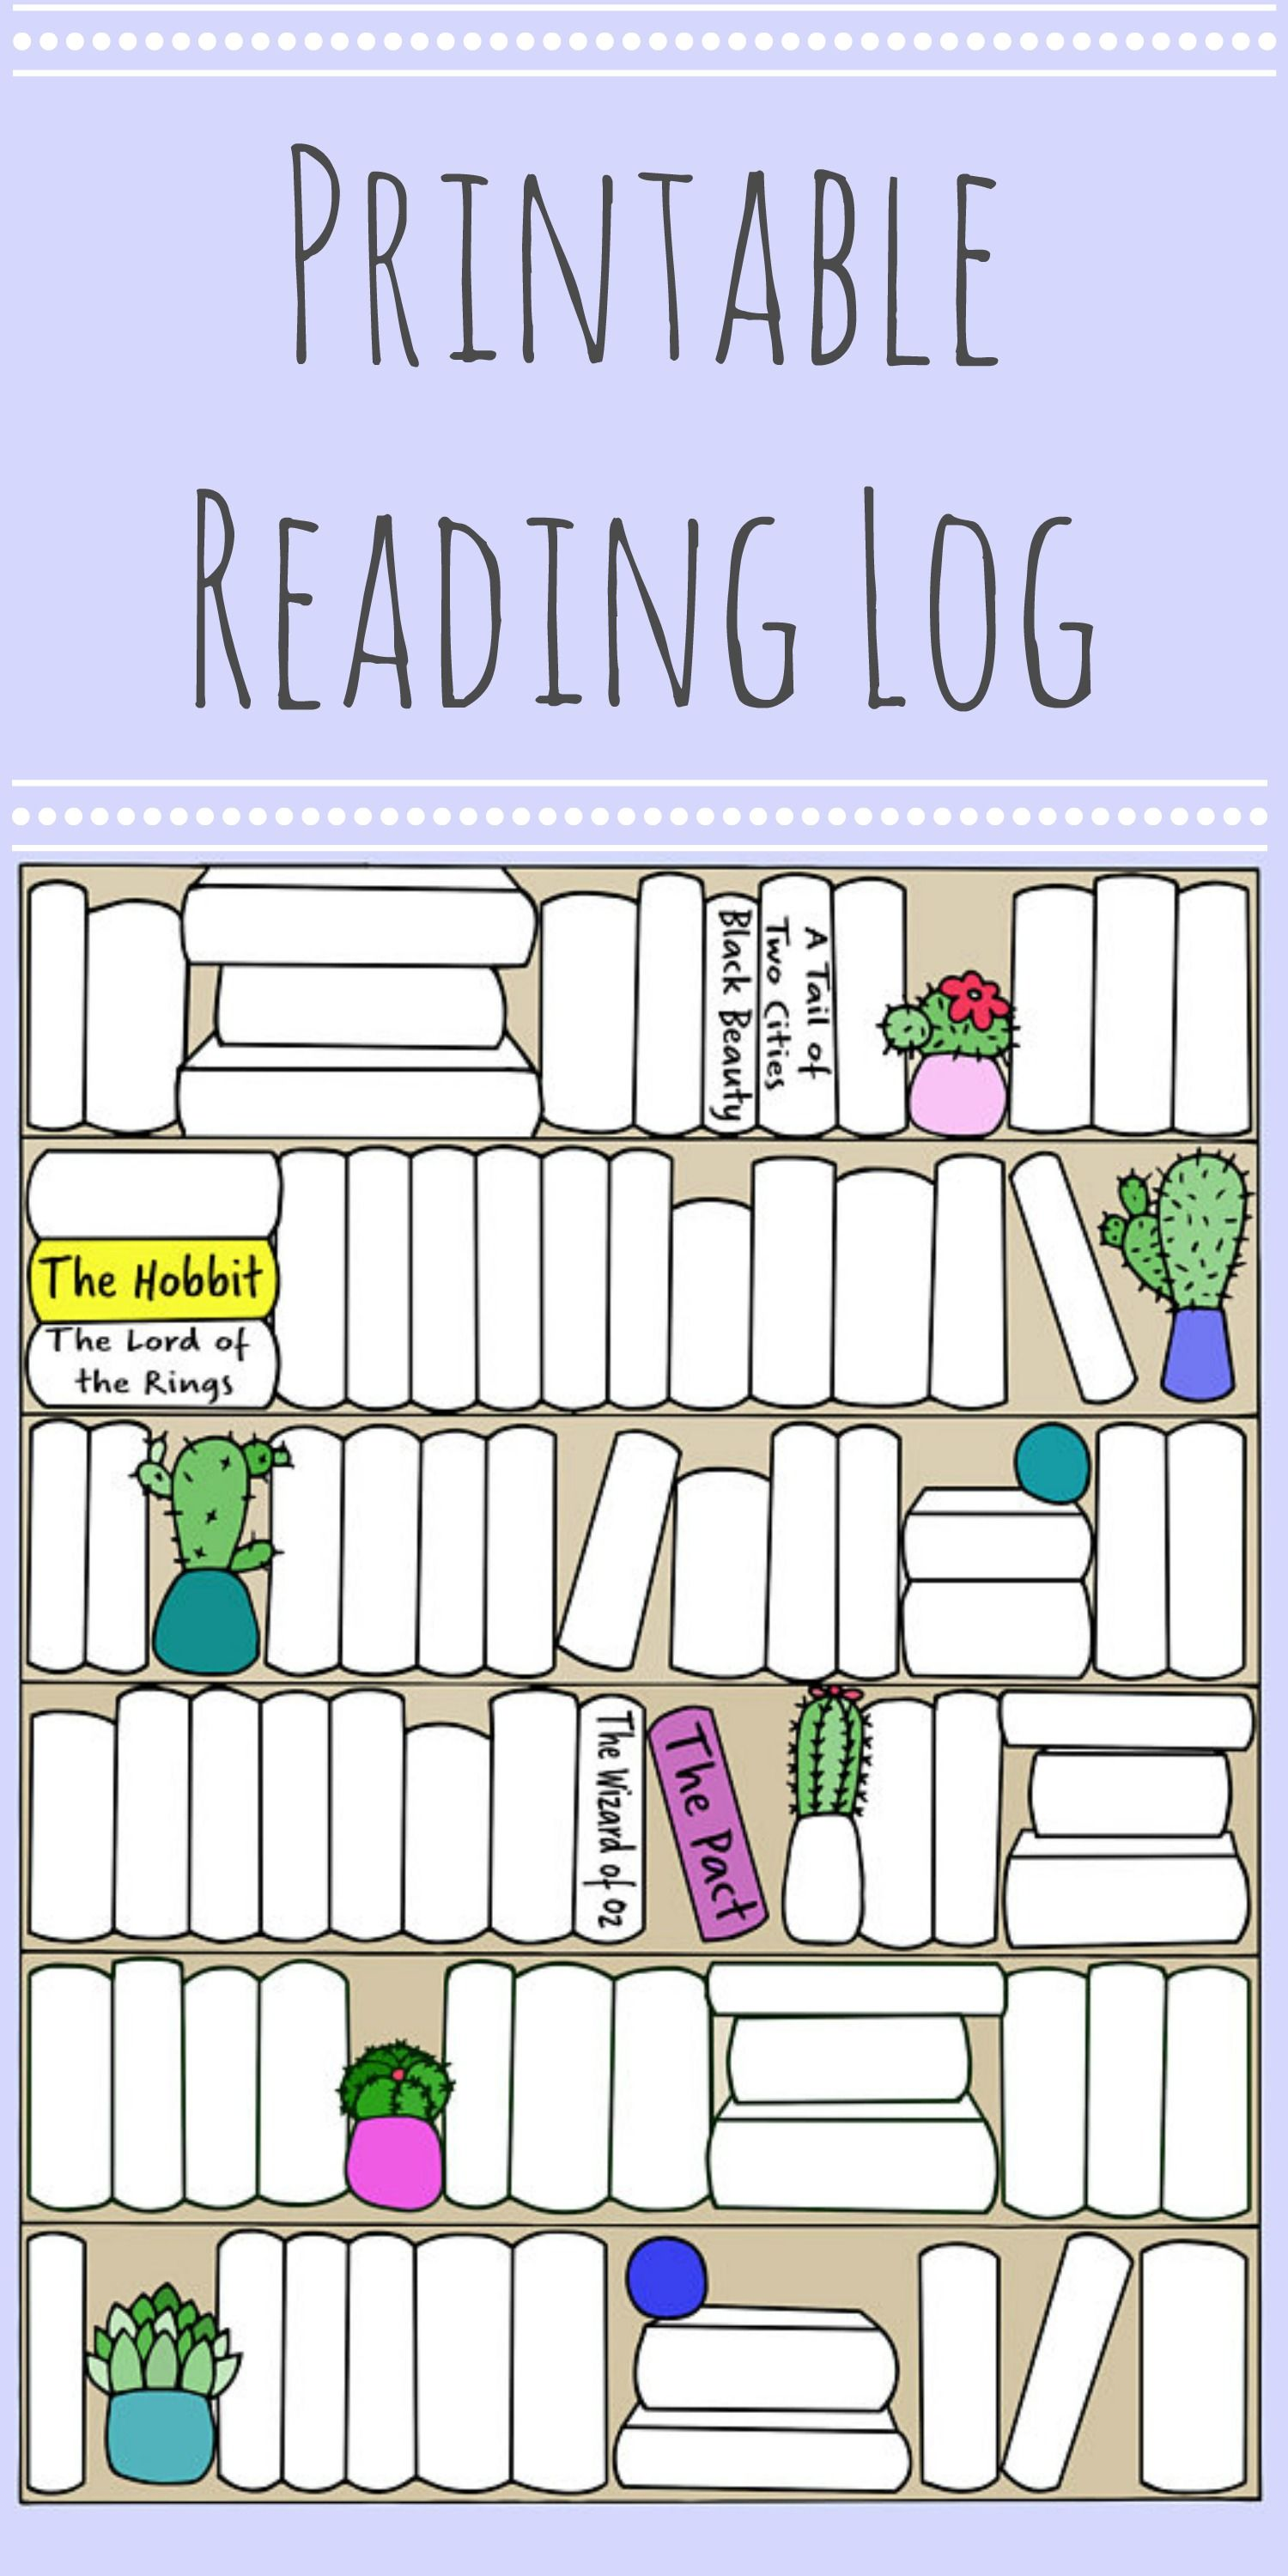 graphic about Books to Read Printable called Printable examining tracker for all of the guides yourself go through